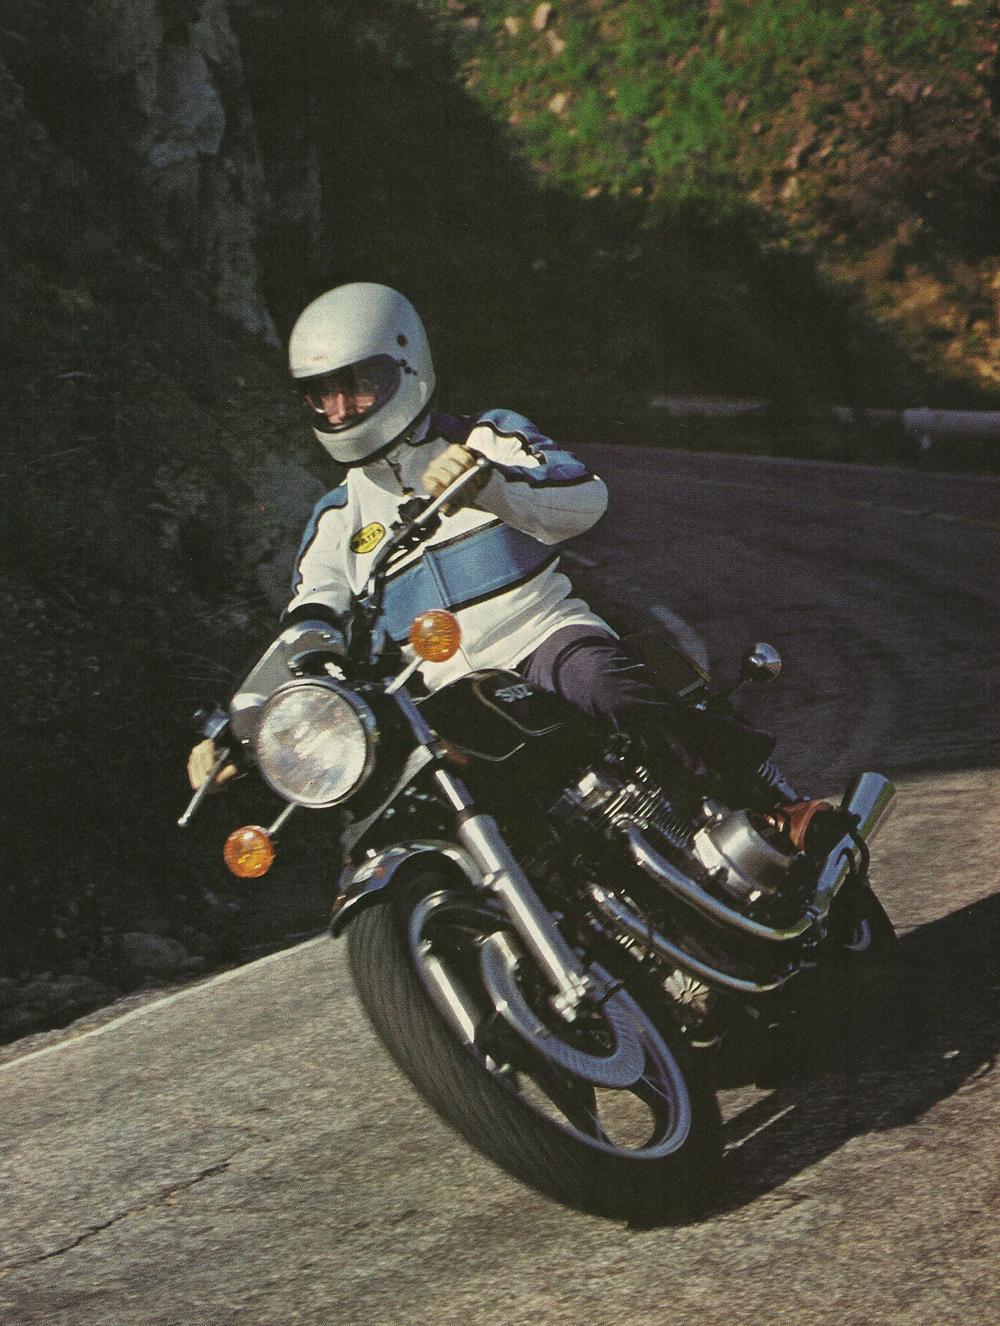 1979 Suzuki GS550EN road test 4.jpg